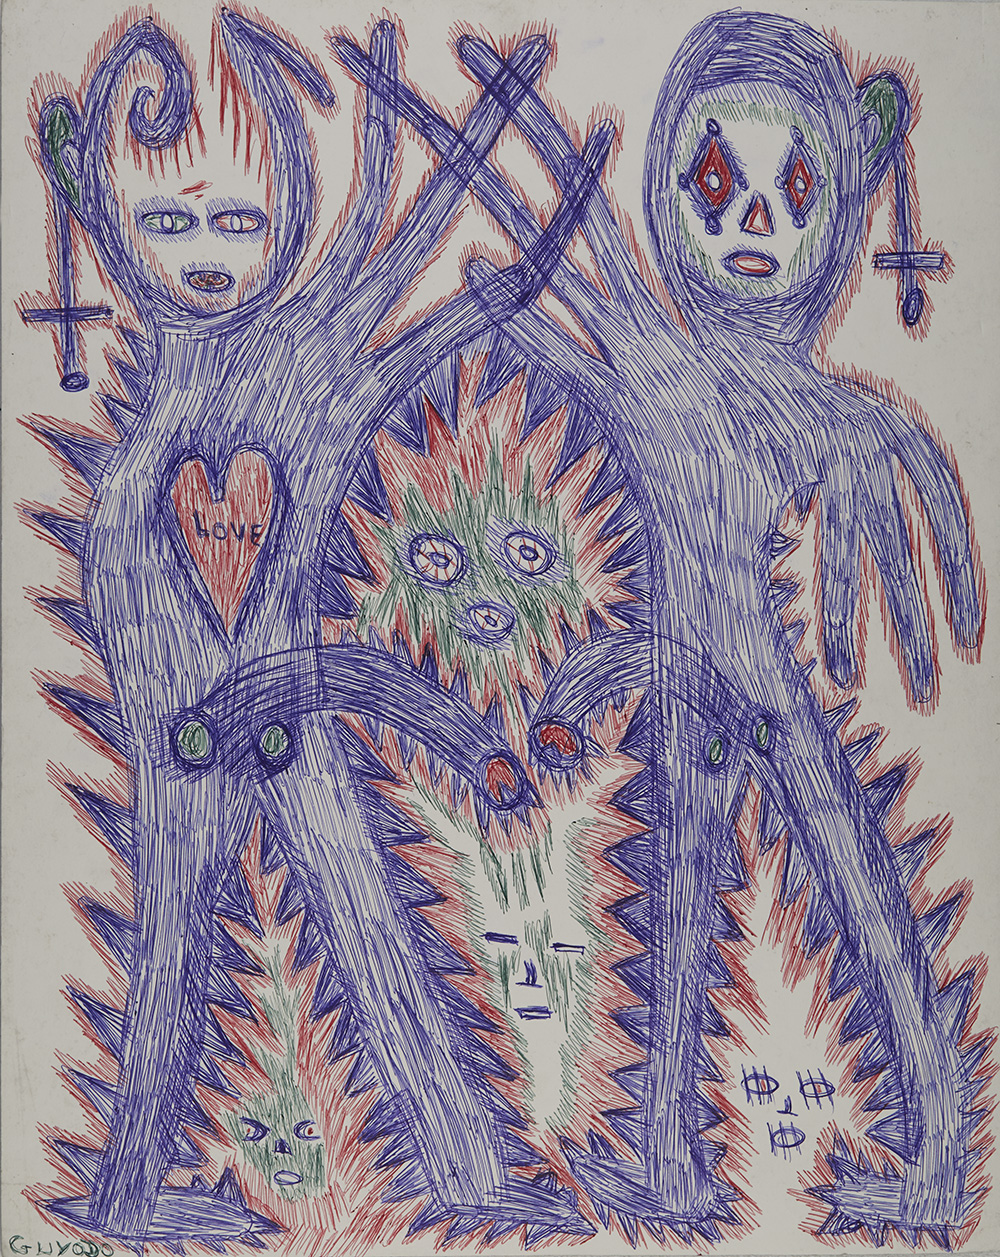 Guyodo (Frantz Jacques)    Untitled  , 2015 Ballpoint pen on matboard  19.5 x 15.5 inches 49.5 x 39.4 cm Gyd 44